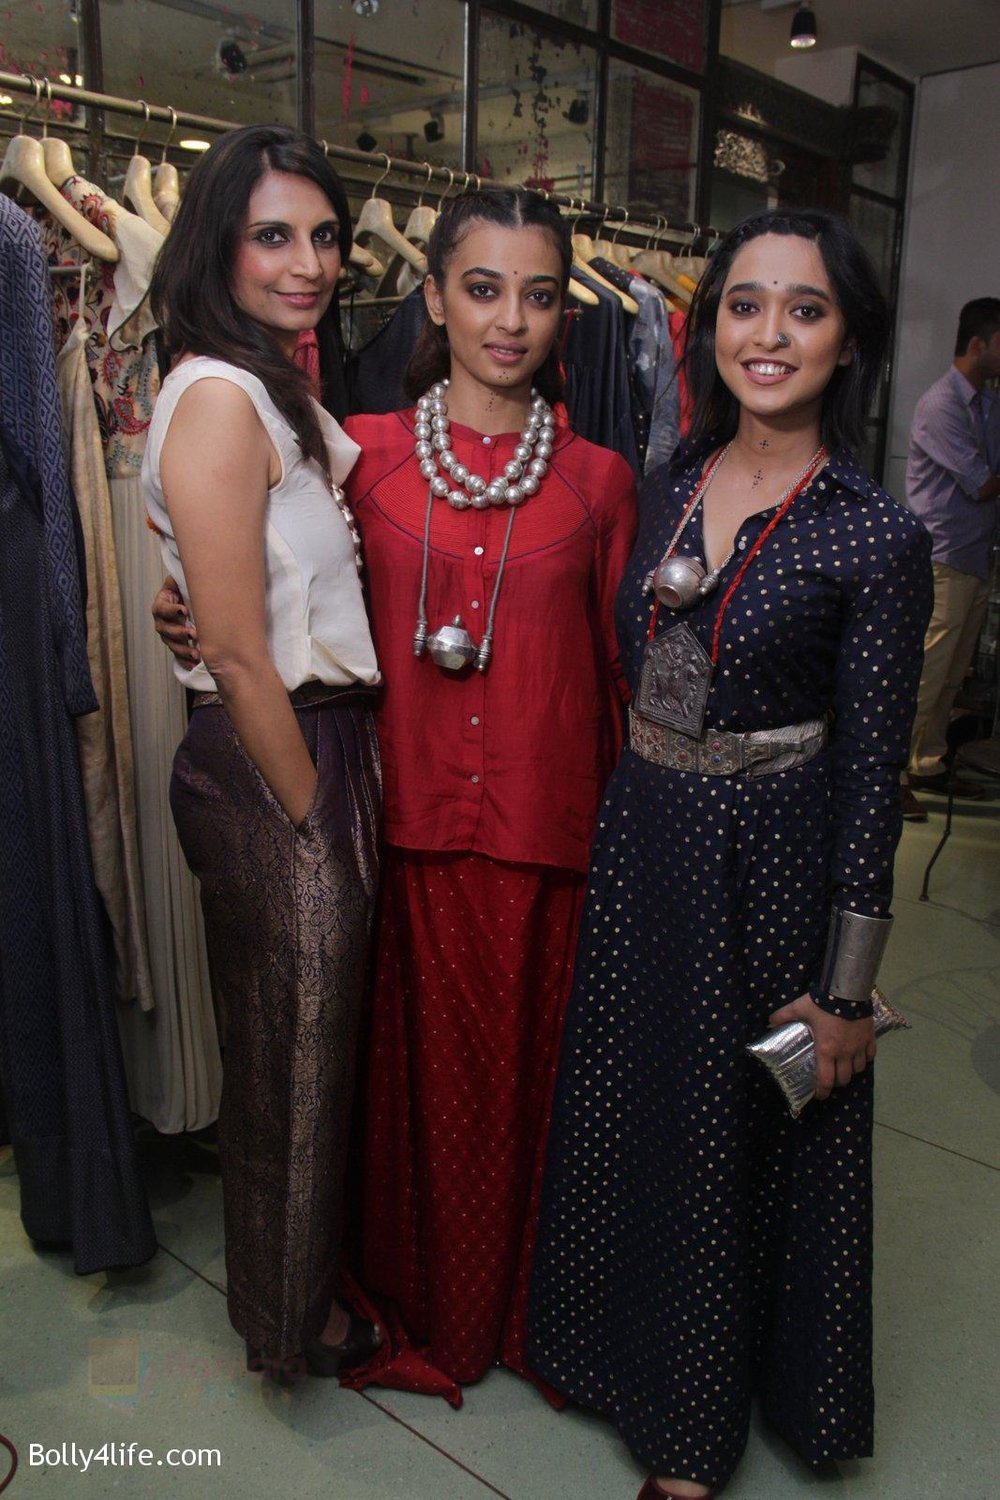 Radhika-Apte-Sayani-Gupta-unveil-Festive-Edit-of-new-Luxury-Pret-label-AMOH-by-Designers-Monica-Karishma-of-JADE-on-26th-Sept-2016-34.jpg